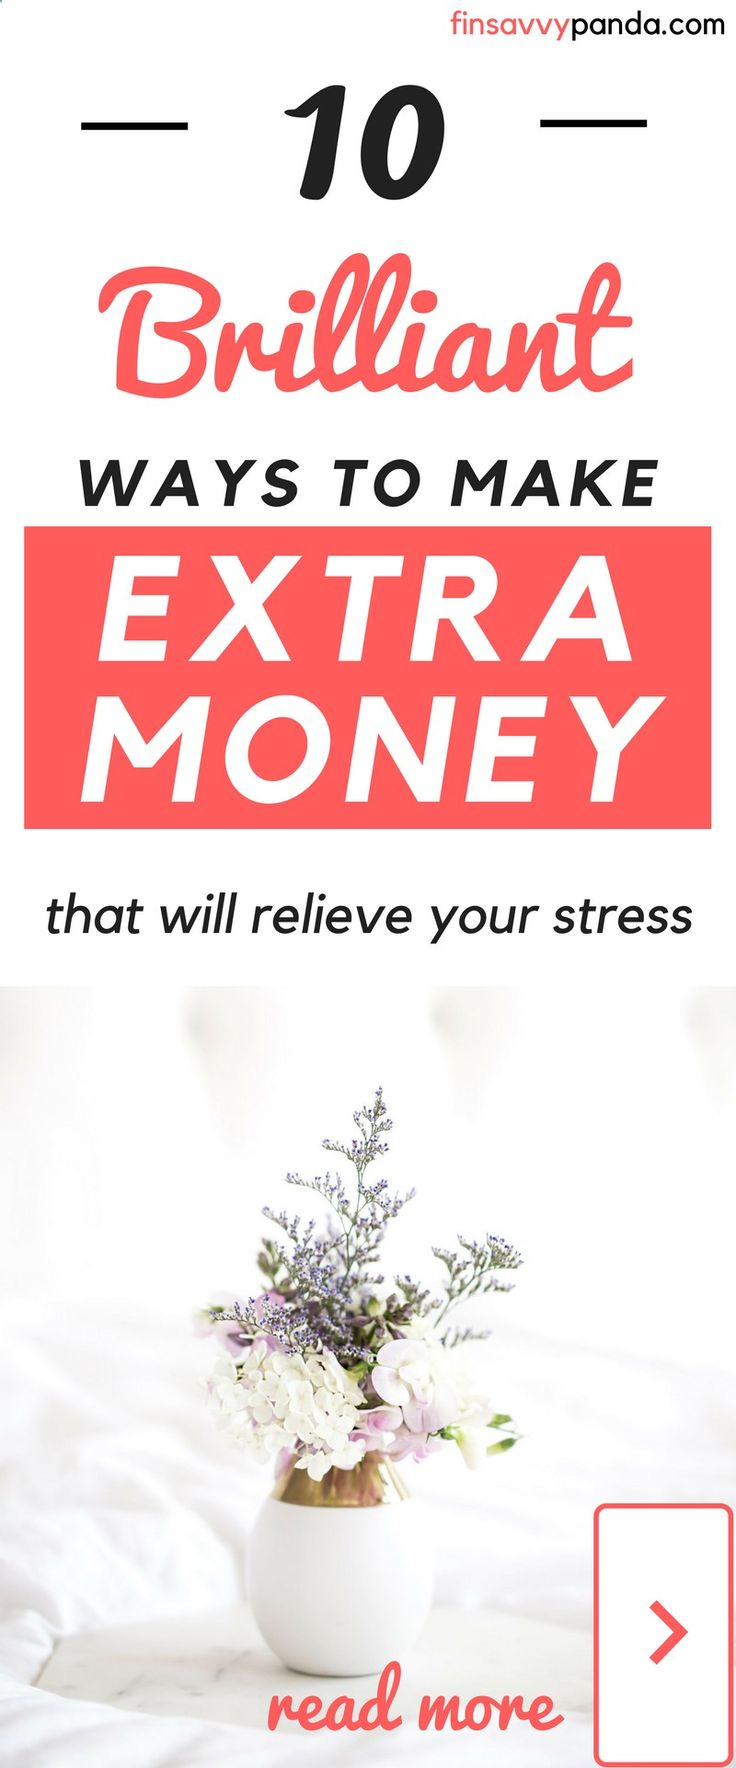 Earn Money Virtual Training Don't like your 9 to 5 job? Feeling stressed from it? There are many other ways where you can make more money on the side to relieve your financial stress. Read more at finsavvypanda.com. money making ideas | make more money ideas | make extra money | side hustle ideas Legendary Entrepreneurs Show You How to Start, Launch & Grow a Digital Business...16 Hours of Training from Industry Titans | Have Your Business Up & Running Fast If you didn't show up LIVE, y...